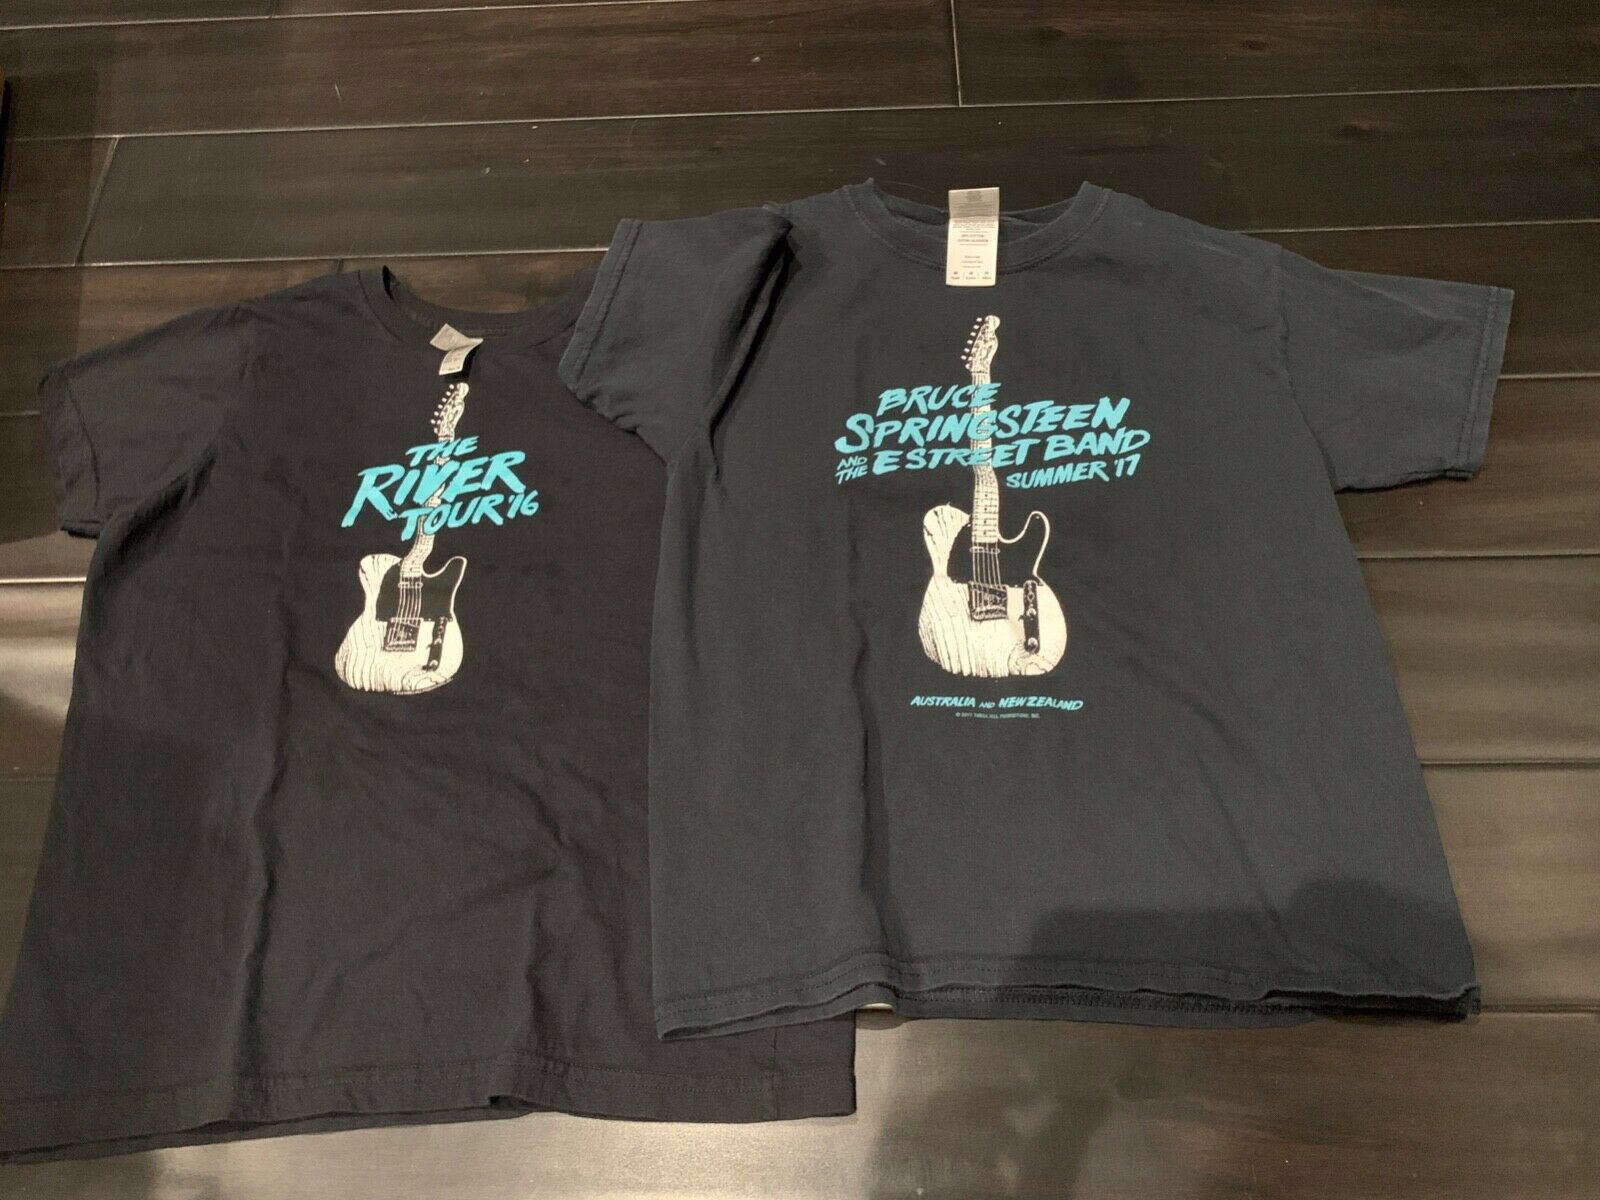 Bruce Springsteen And The E Street Band Youth River Tour Tshirts US Australia - $8.99